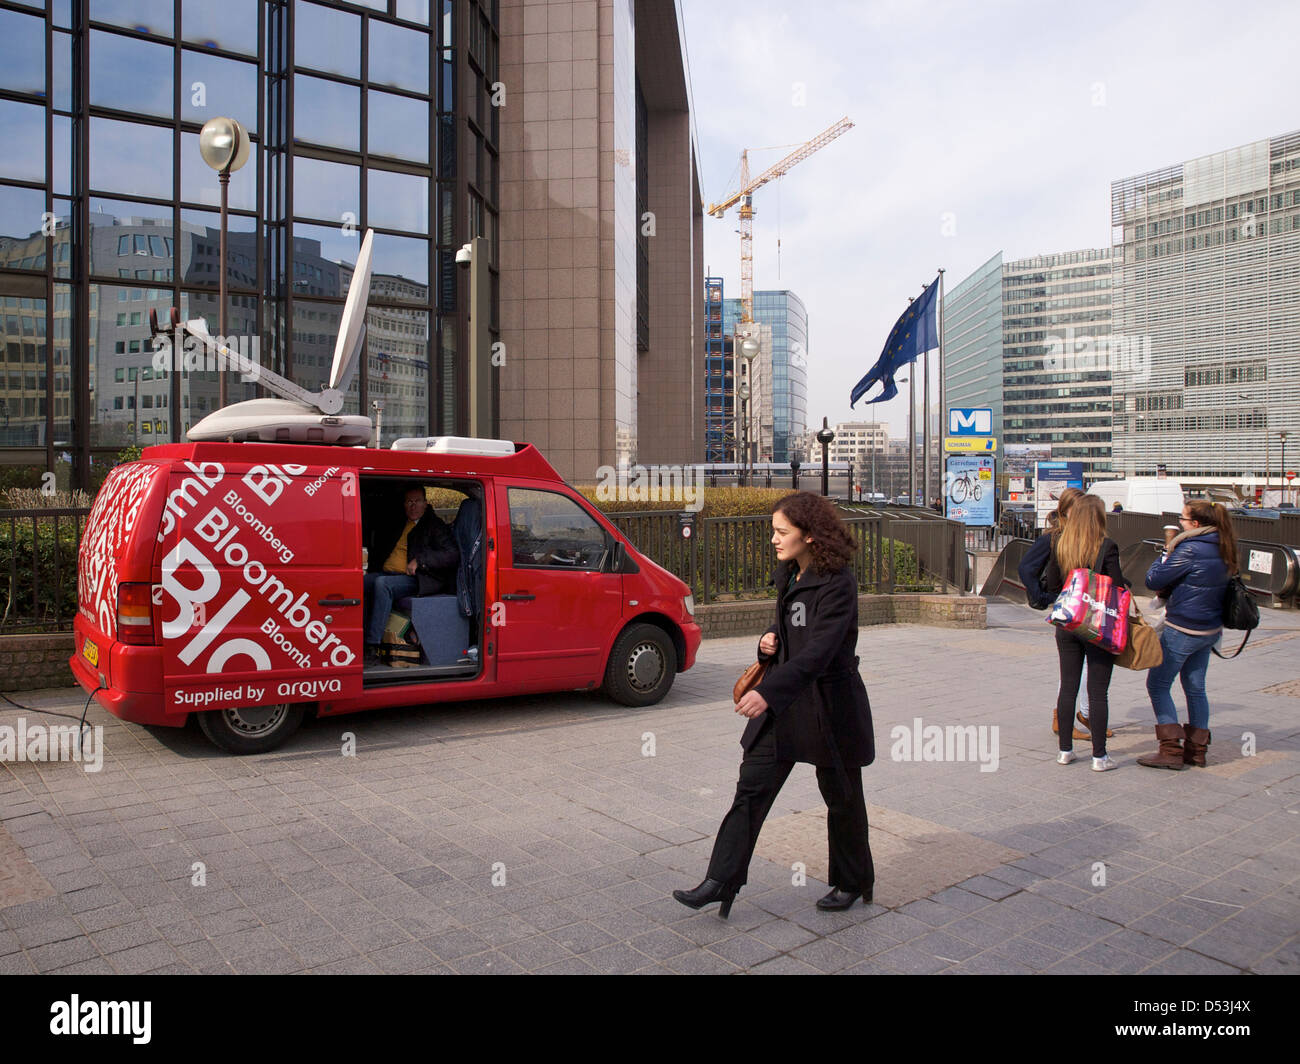 Bloomberg satellite van at the Berlaymont European Union building in Brussels, Belgium - Stock Image